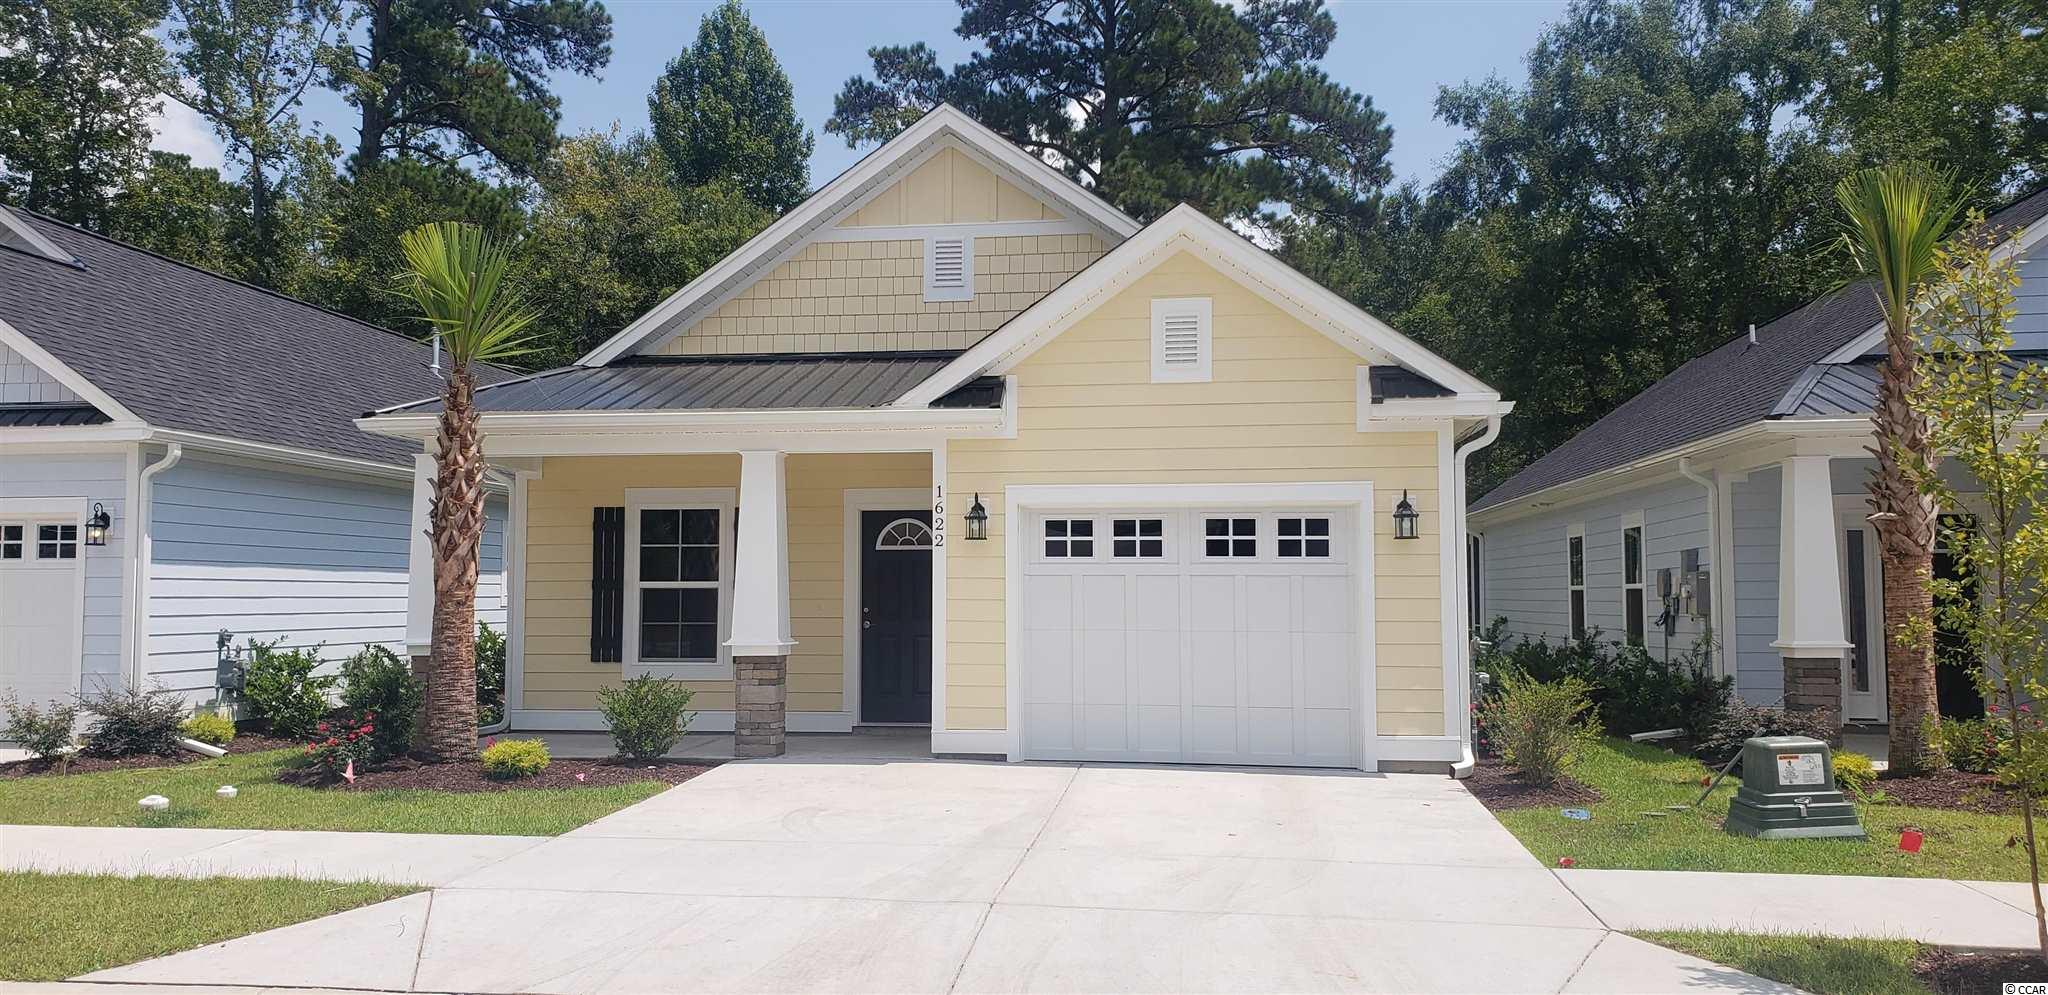 COLORFUL, CHARMING & CUSTOM BUILT!! For those seeking the best of both worlds, discover the historical quaint town of Conway approximately 20 miles from the beach and excitement. Located just off 501 behind a scenic lake, this master planned community features a clubhouse and swimming pool, well-lit streets, sidewalks and beautifully designed streetscapes with lush landscaping. The finely detailed Osprey plan features a low country cottage design with 3 bedrooms, 2 baths, 1384 HSF and an oversized 1-car garage. It comes with a gas range, on demand gas water heater, gas heat, brick accents and bright coastal color palettes. This park-like setting is ideal for early morning jogs or afternoon strolls and the front porches are perfect for that fine old lost art of visiting with neighbors. Come discover why Carsen's Ferry is the perfect fit for you and your family.